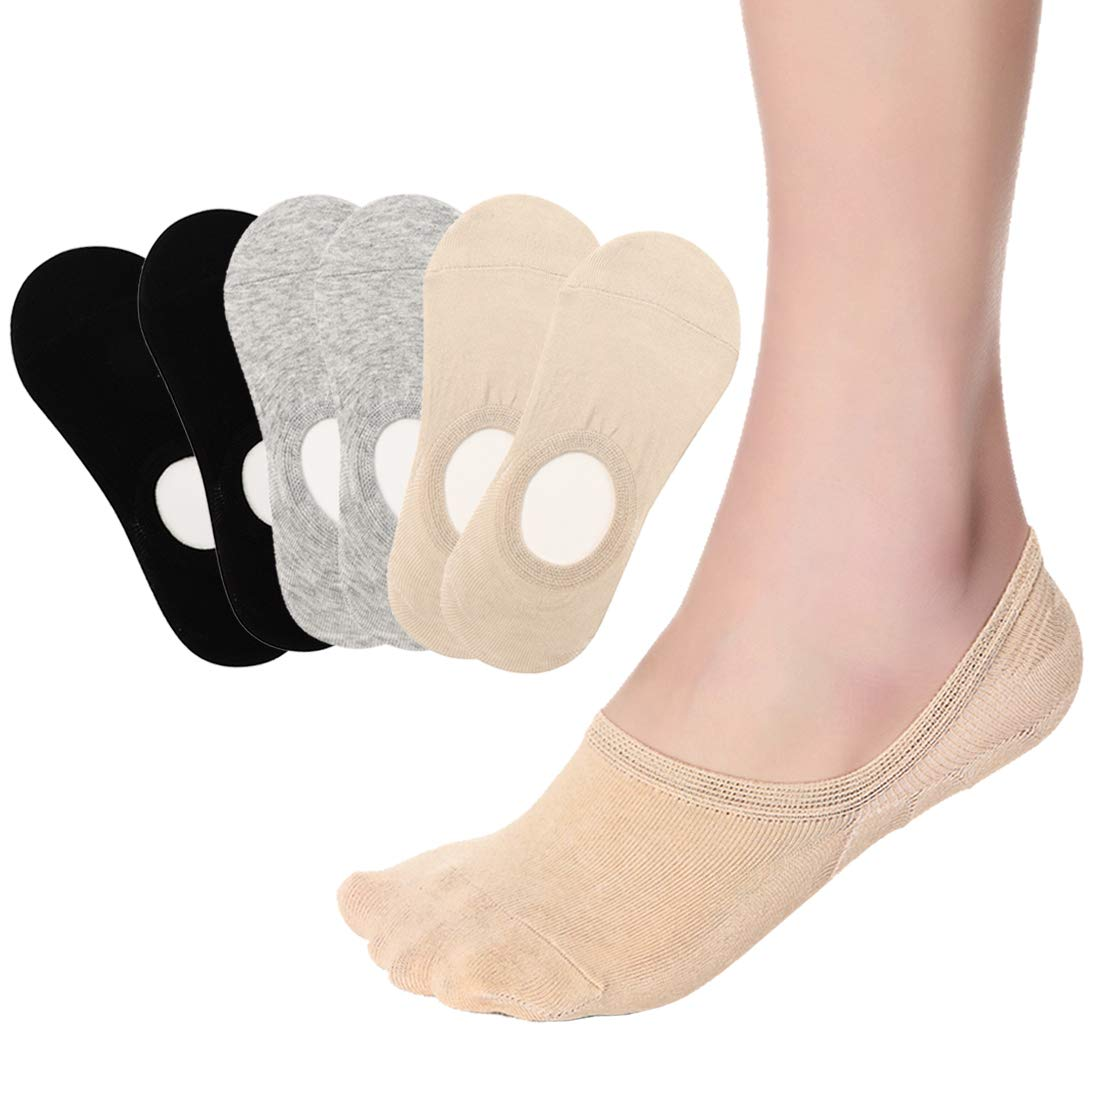 Women No Show Liner Socks Low Cut Cotton Non Slip Invisible Hidden Socks 6 Pairs (Free size, 6 Pairs in Solid Colors)